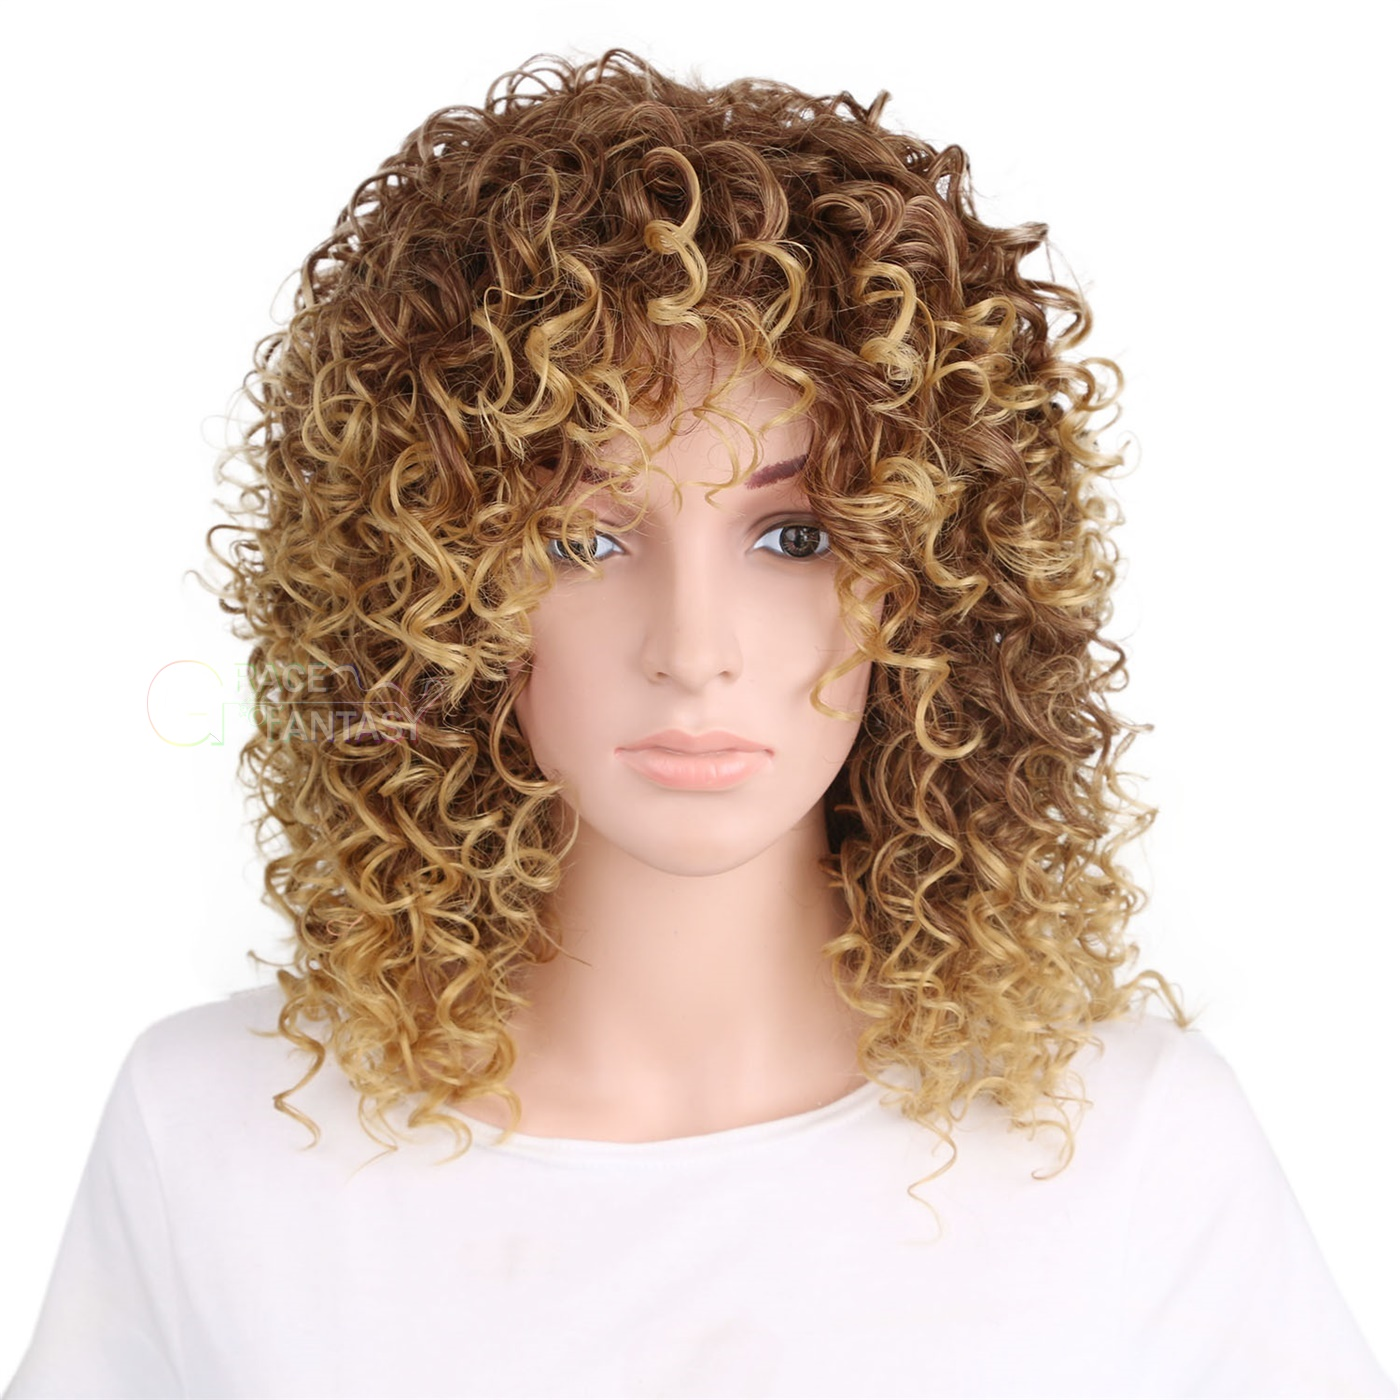 Full Wig for Women Party Wigs